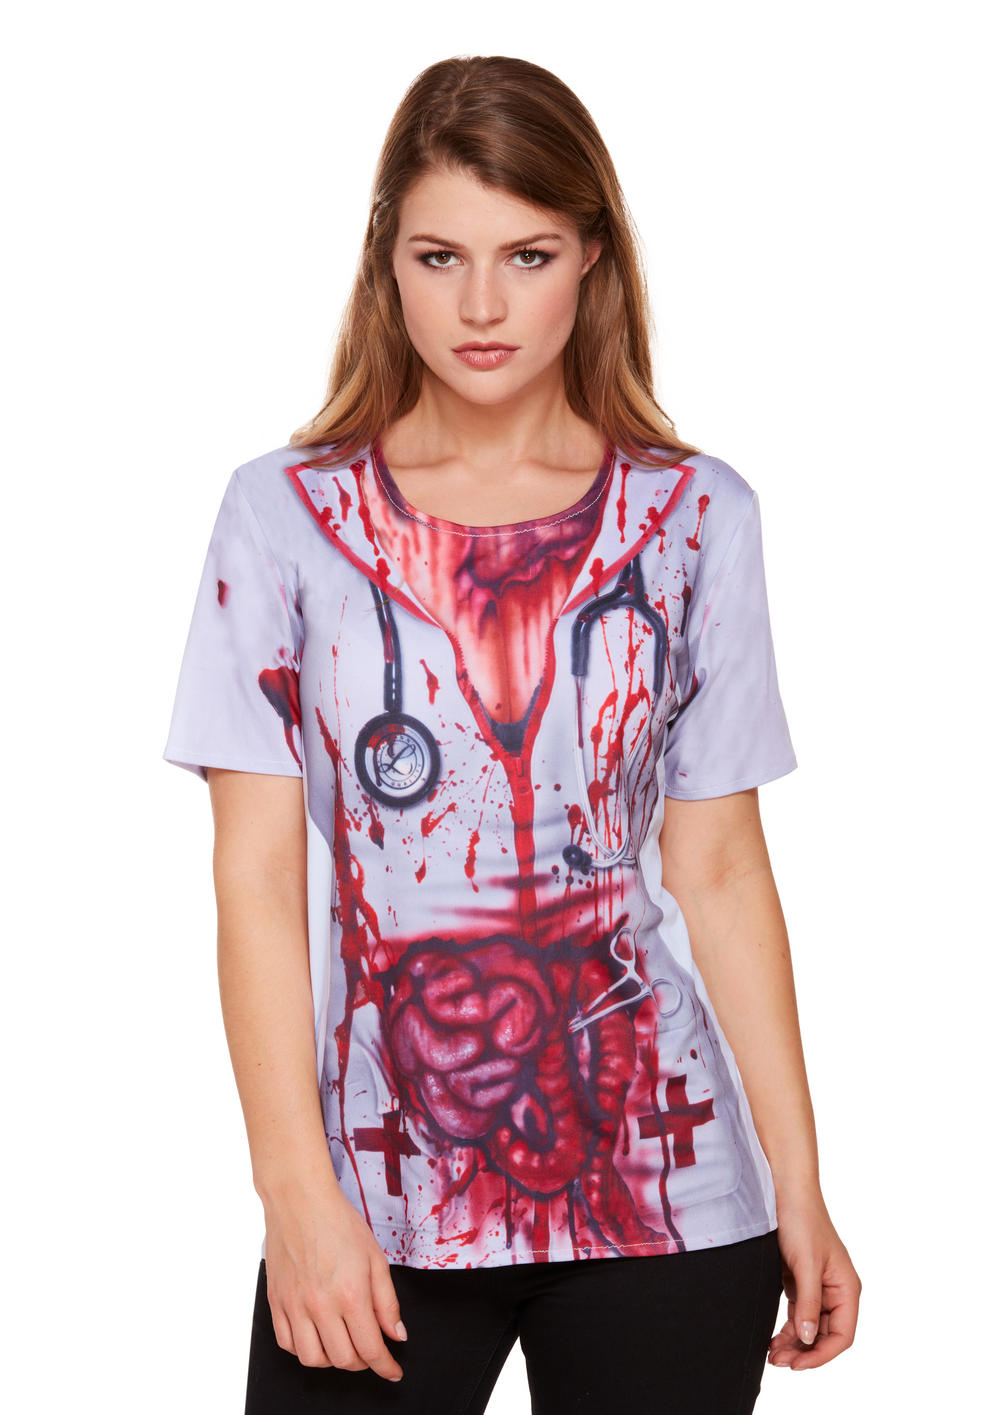 Ladies Bloody Nurse Shirt